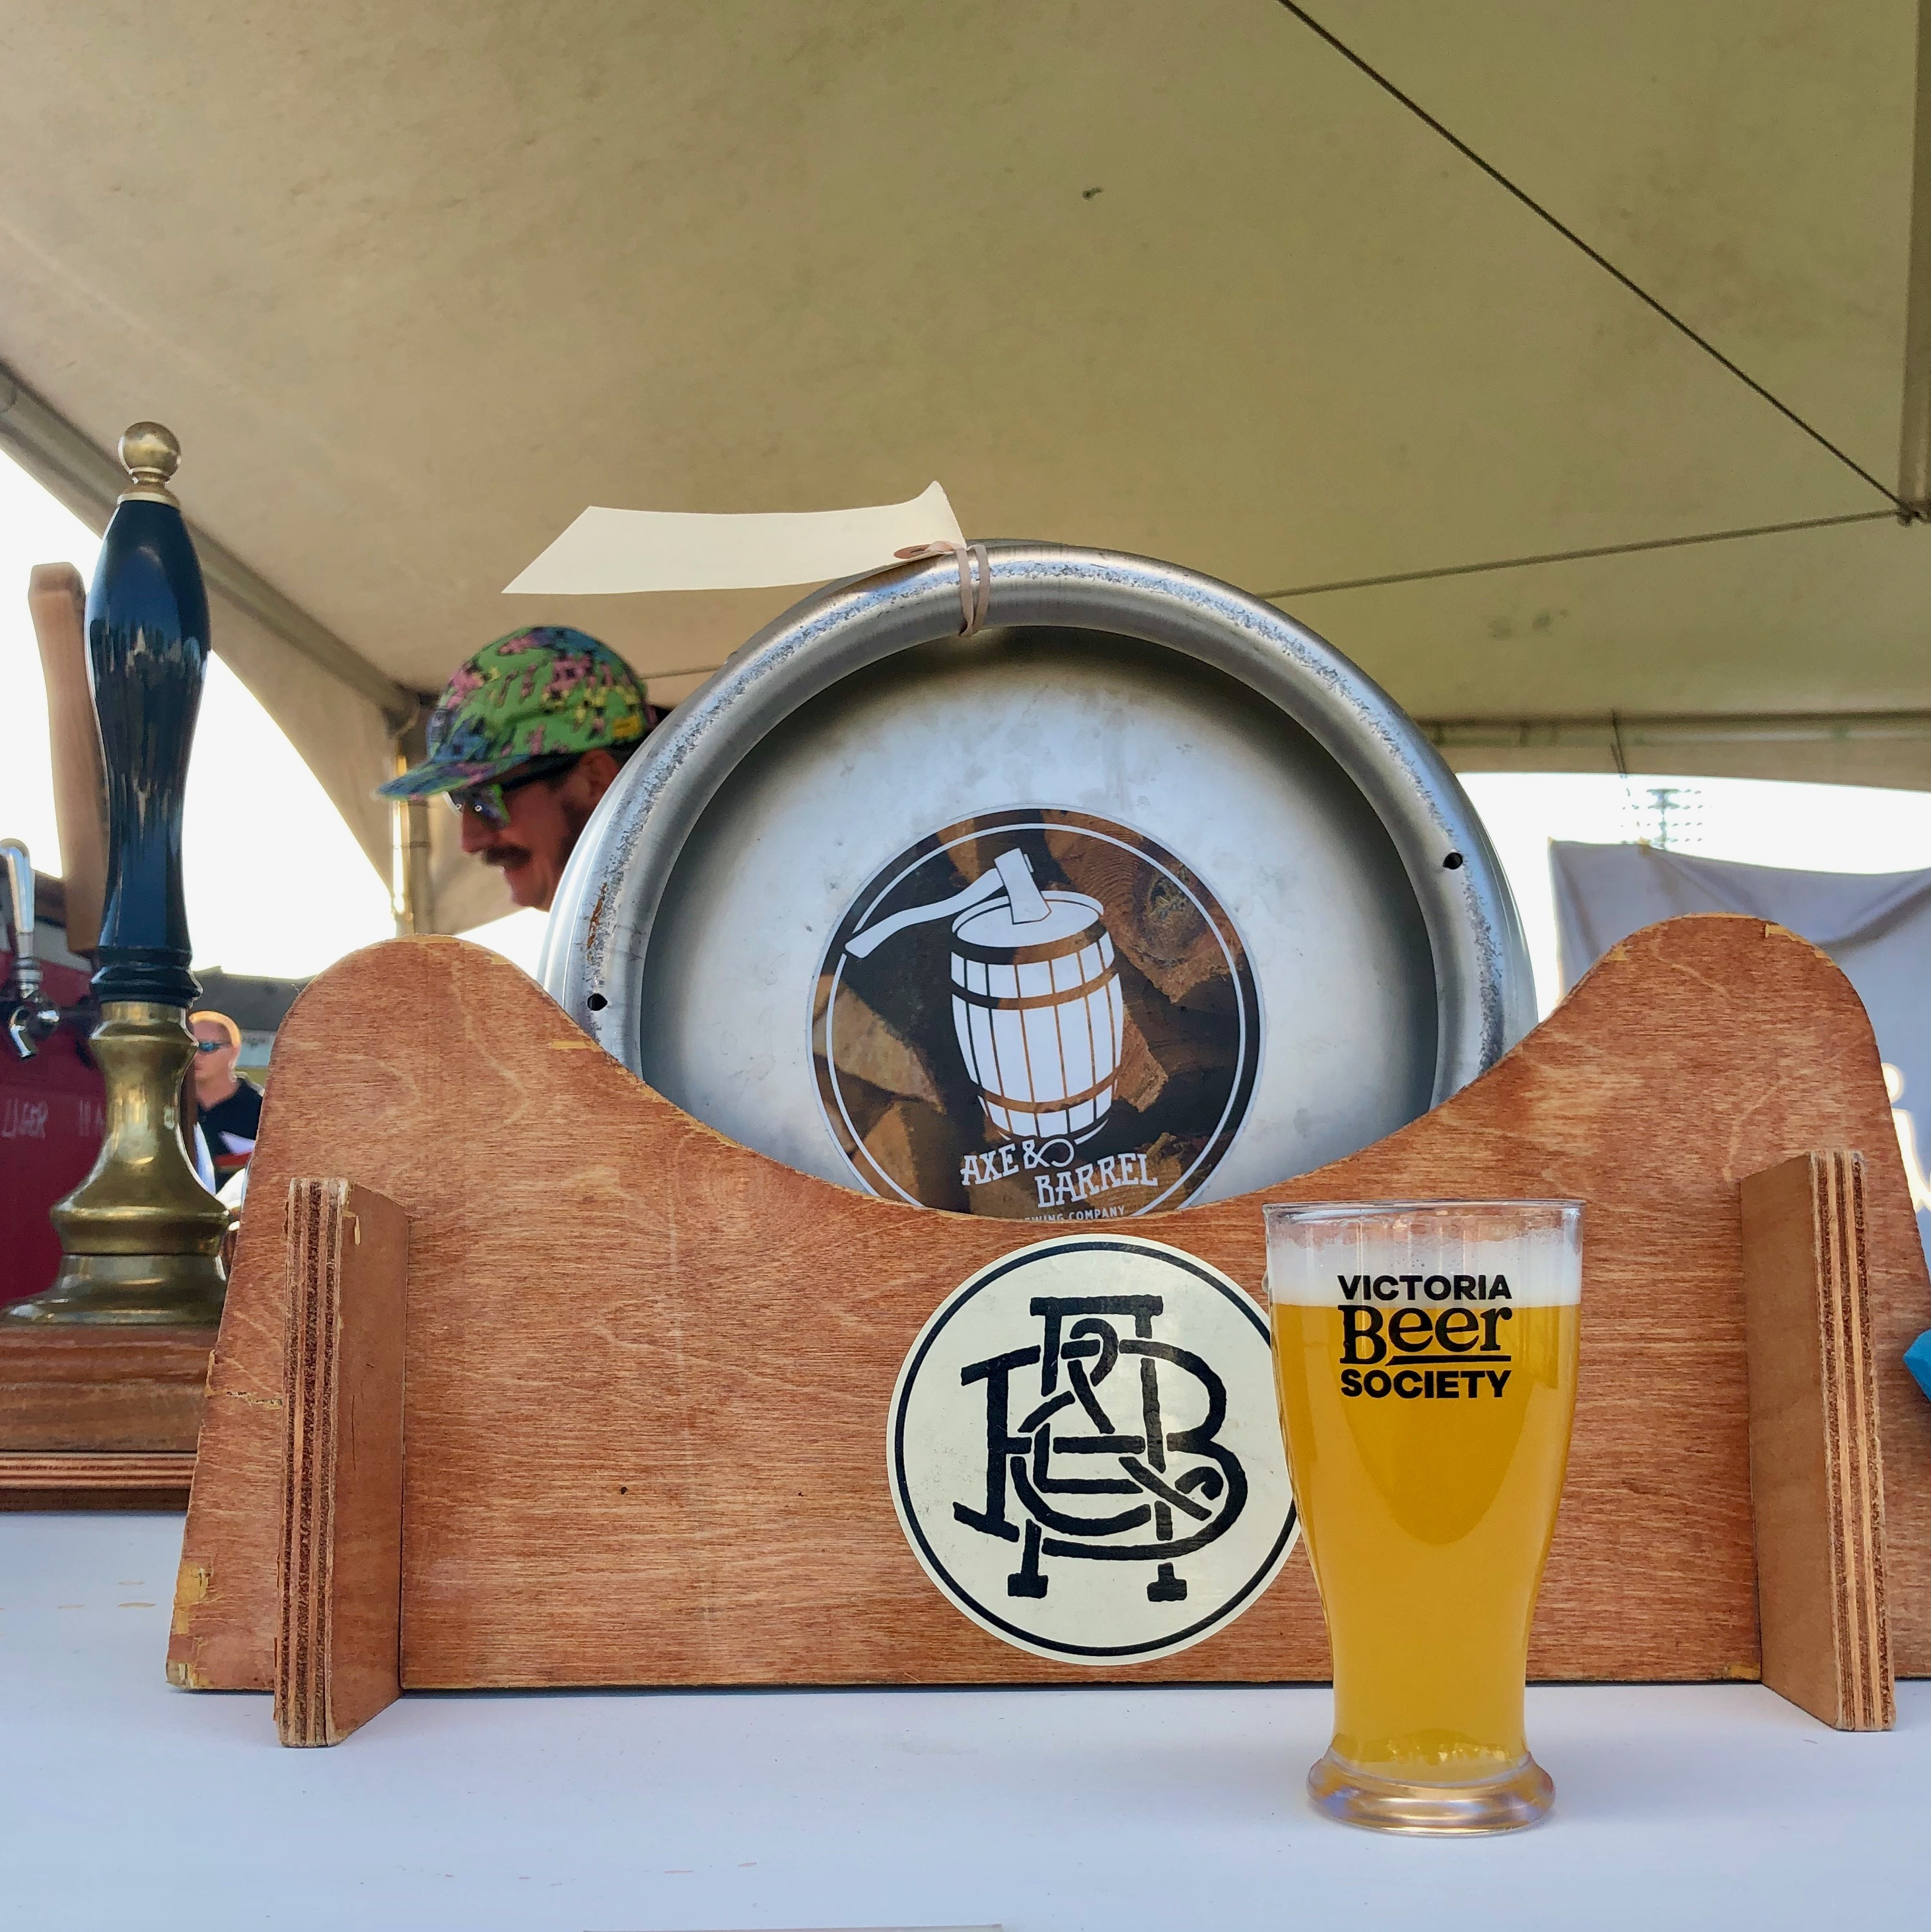 Axel & Barrel brought its beer engine to the 2019 Great Canadian Beer Festival.